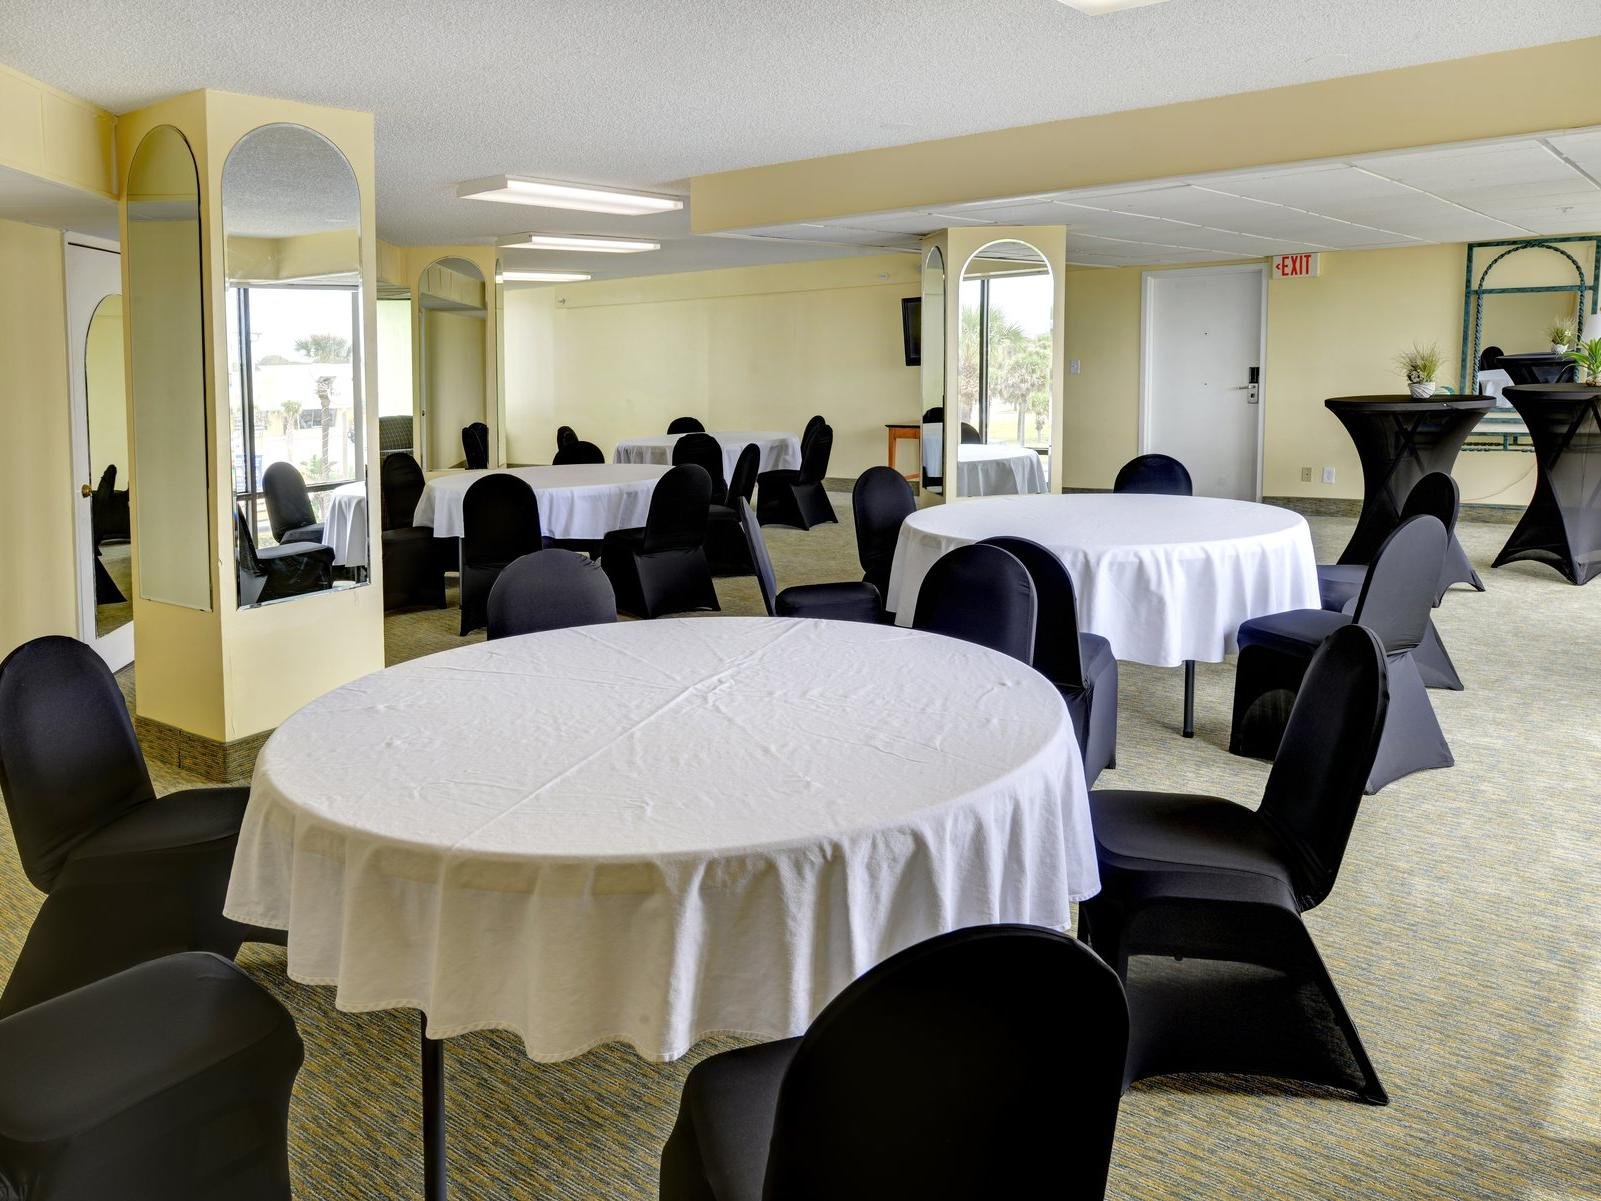 Meeting room with round conference tables.